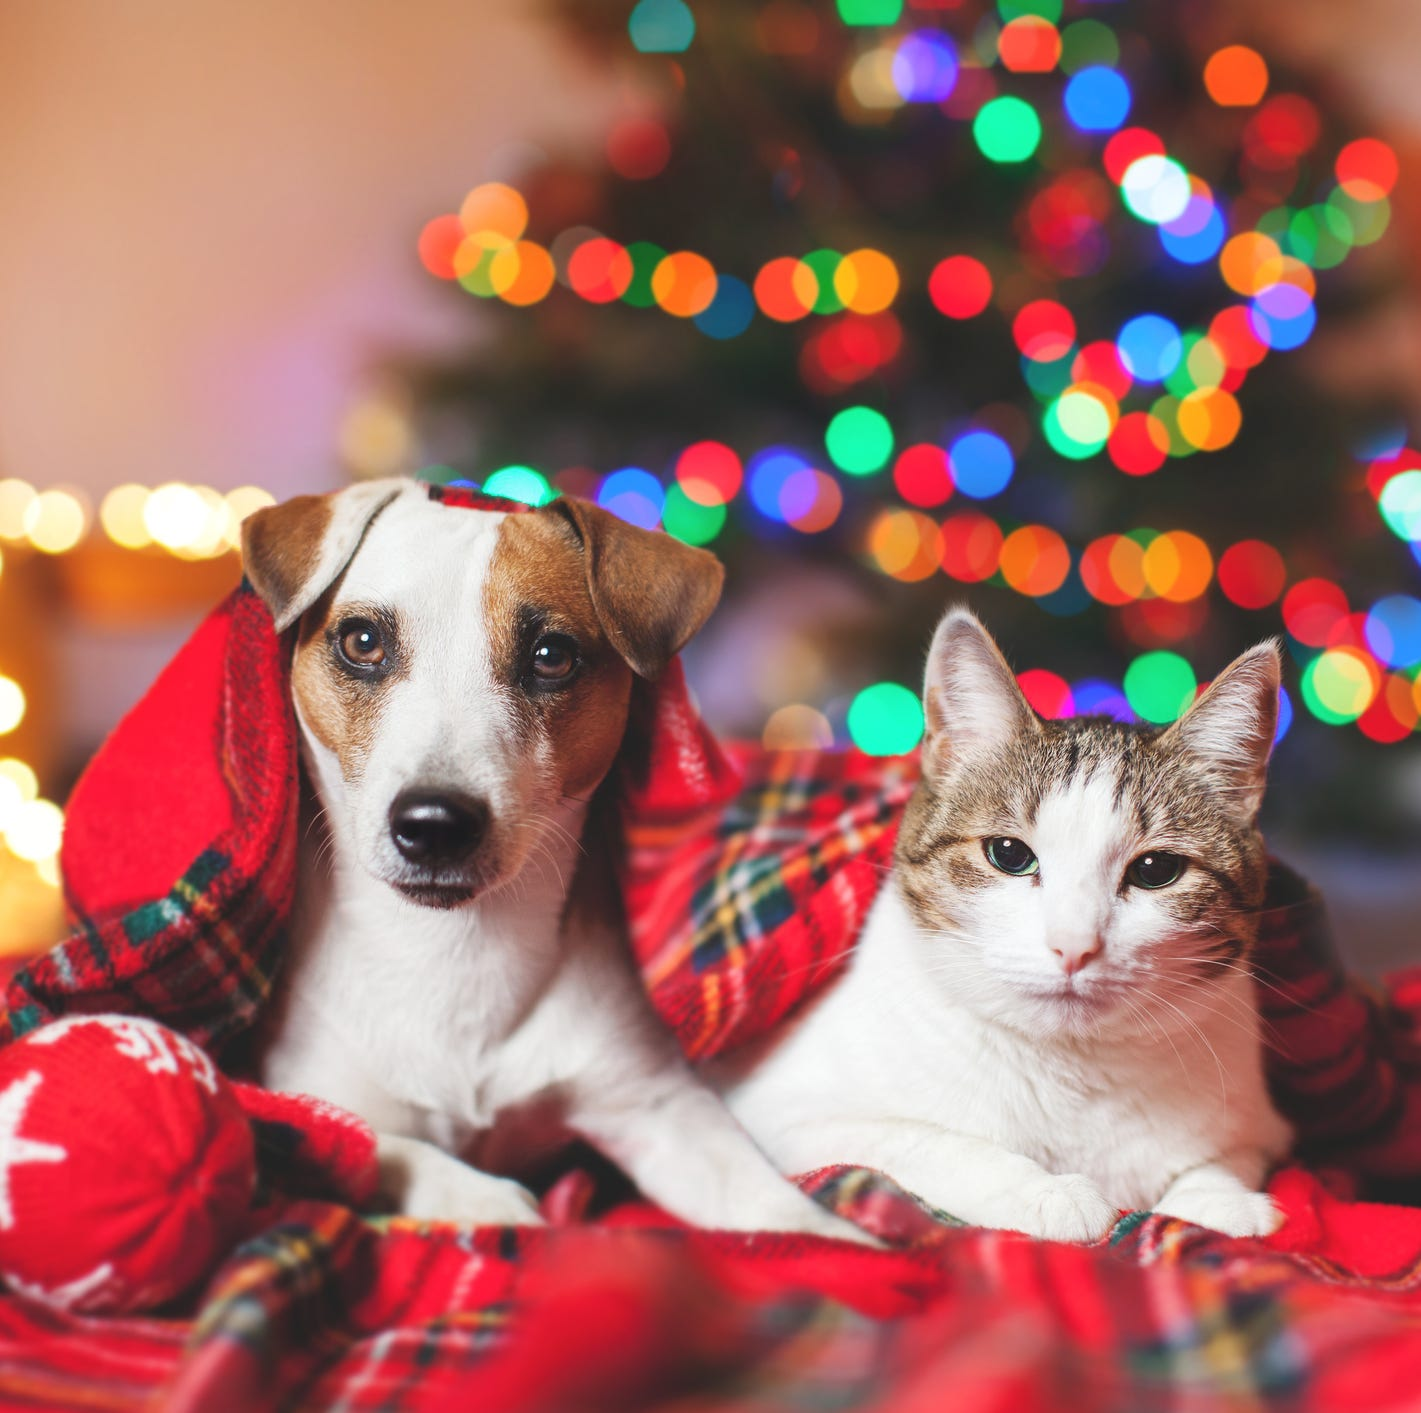 Traveling with pets this holiday season? Here are several tips for a smooth journey